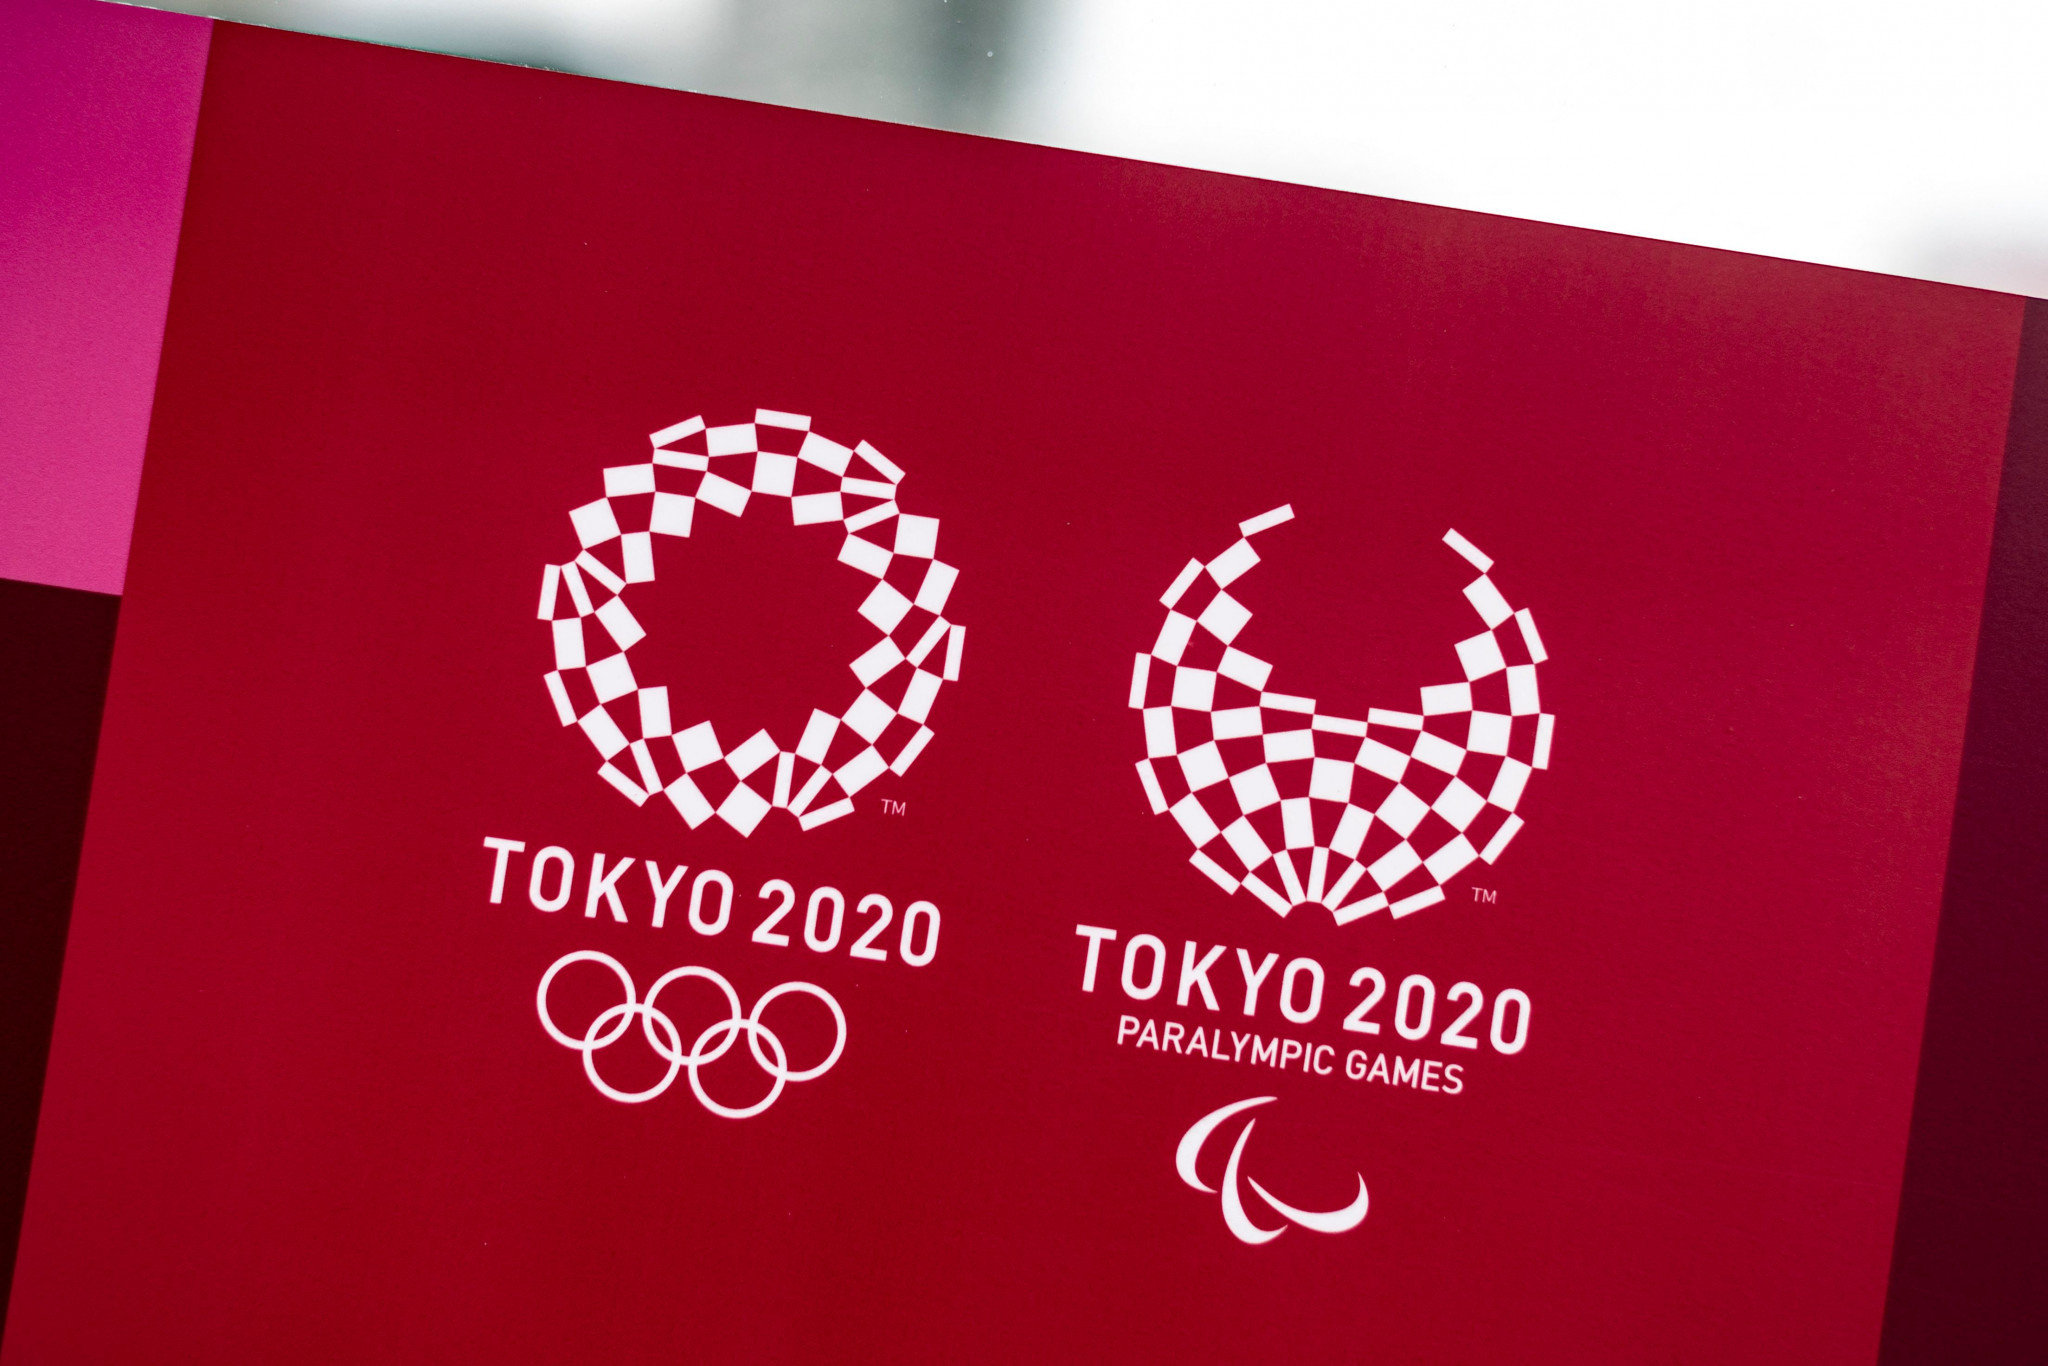 Athleten Deutschland has published a position paper over basic requirements for Tokyo 2020 ©Getty Images